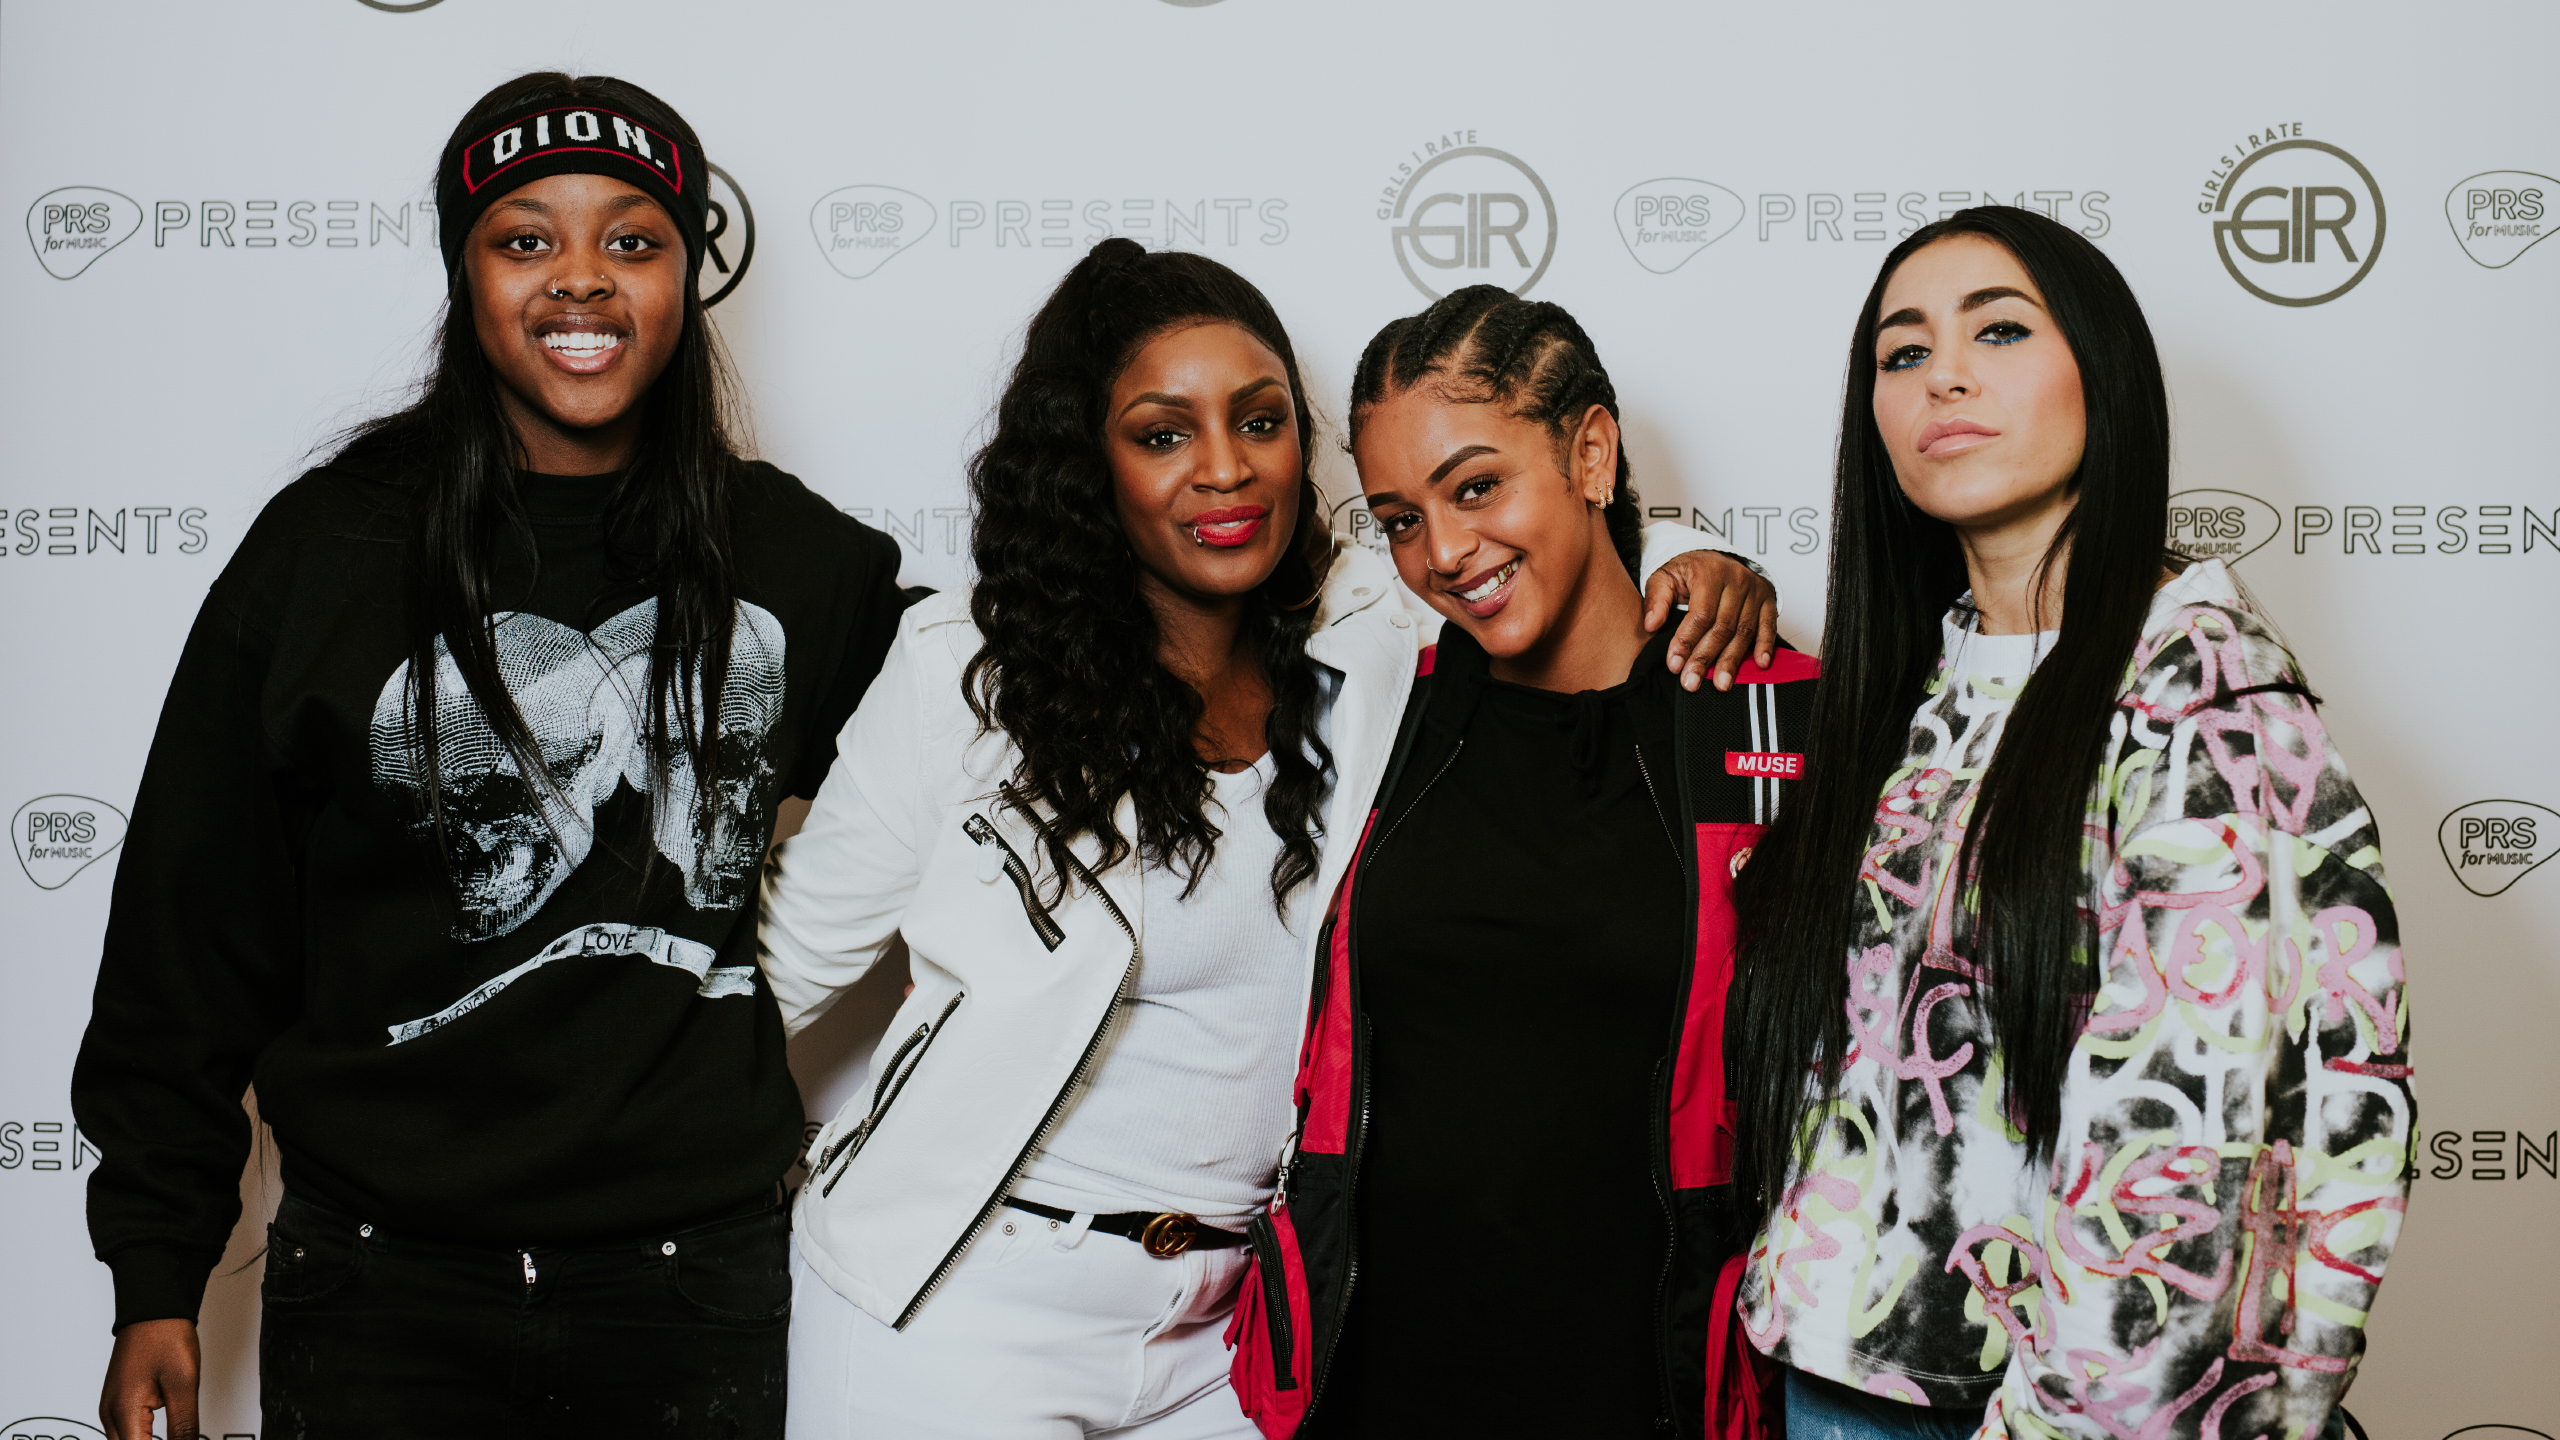 Amaria, Carla Marie Williams, Paigey Cakey and DJ Ellie Prohan group shot